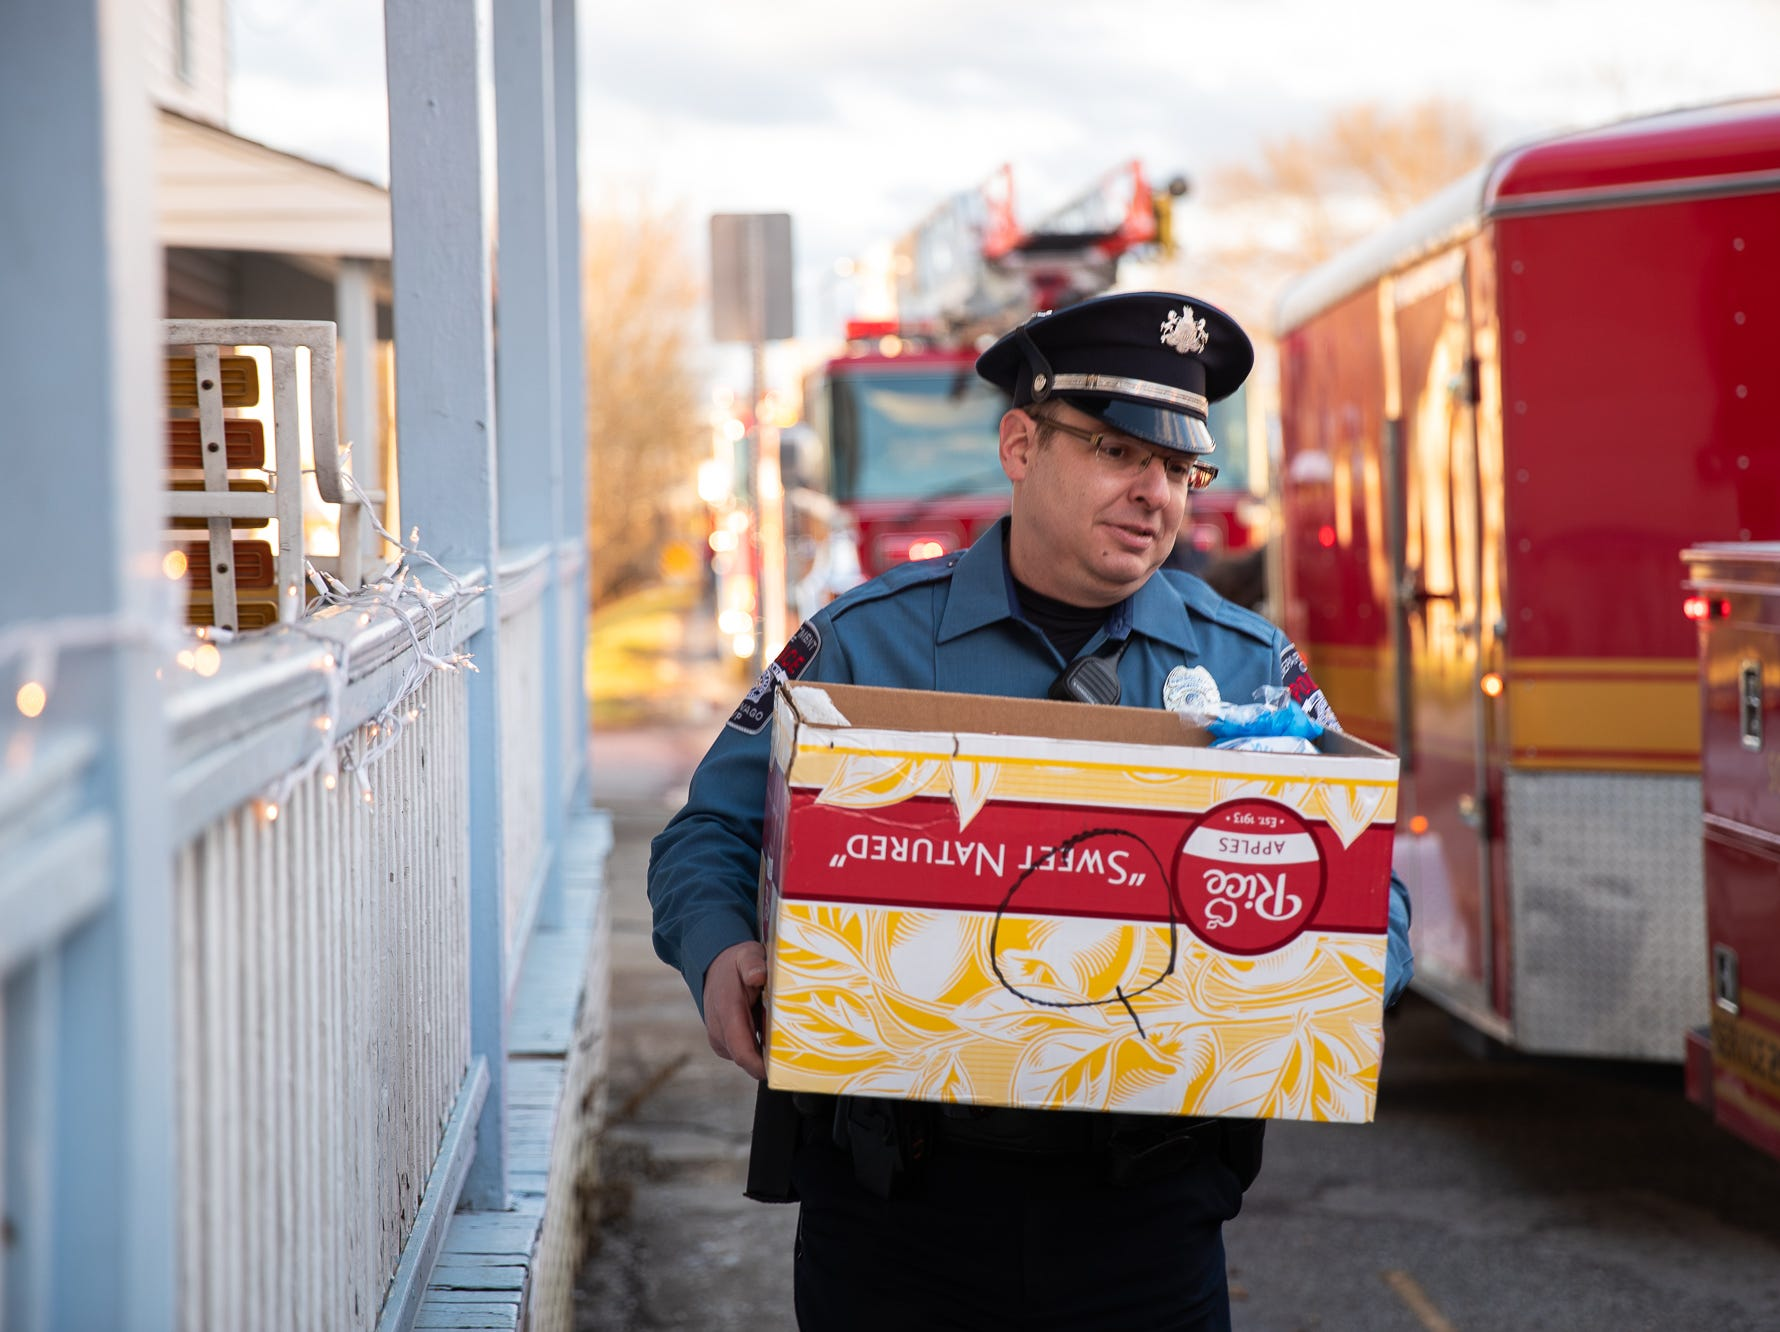 A Conewago Township police officer helps carry presents during the S.A.V.E.S Project Santa, Saturday, Dec. 22, 2018, in McSherrystown Borough. The S.A.V.E.S Project Santa donated food, toys, and clothing to 12 local families in need.